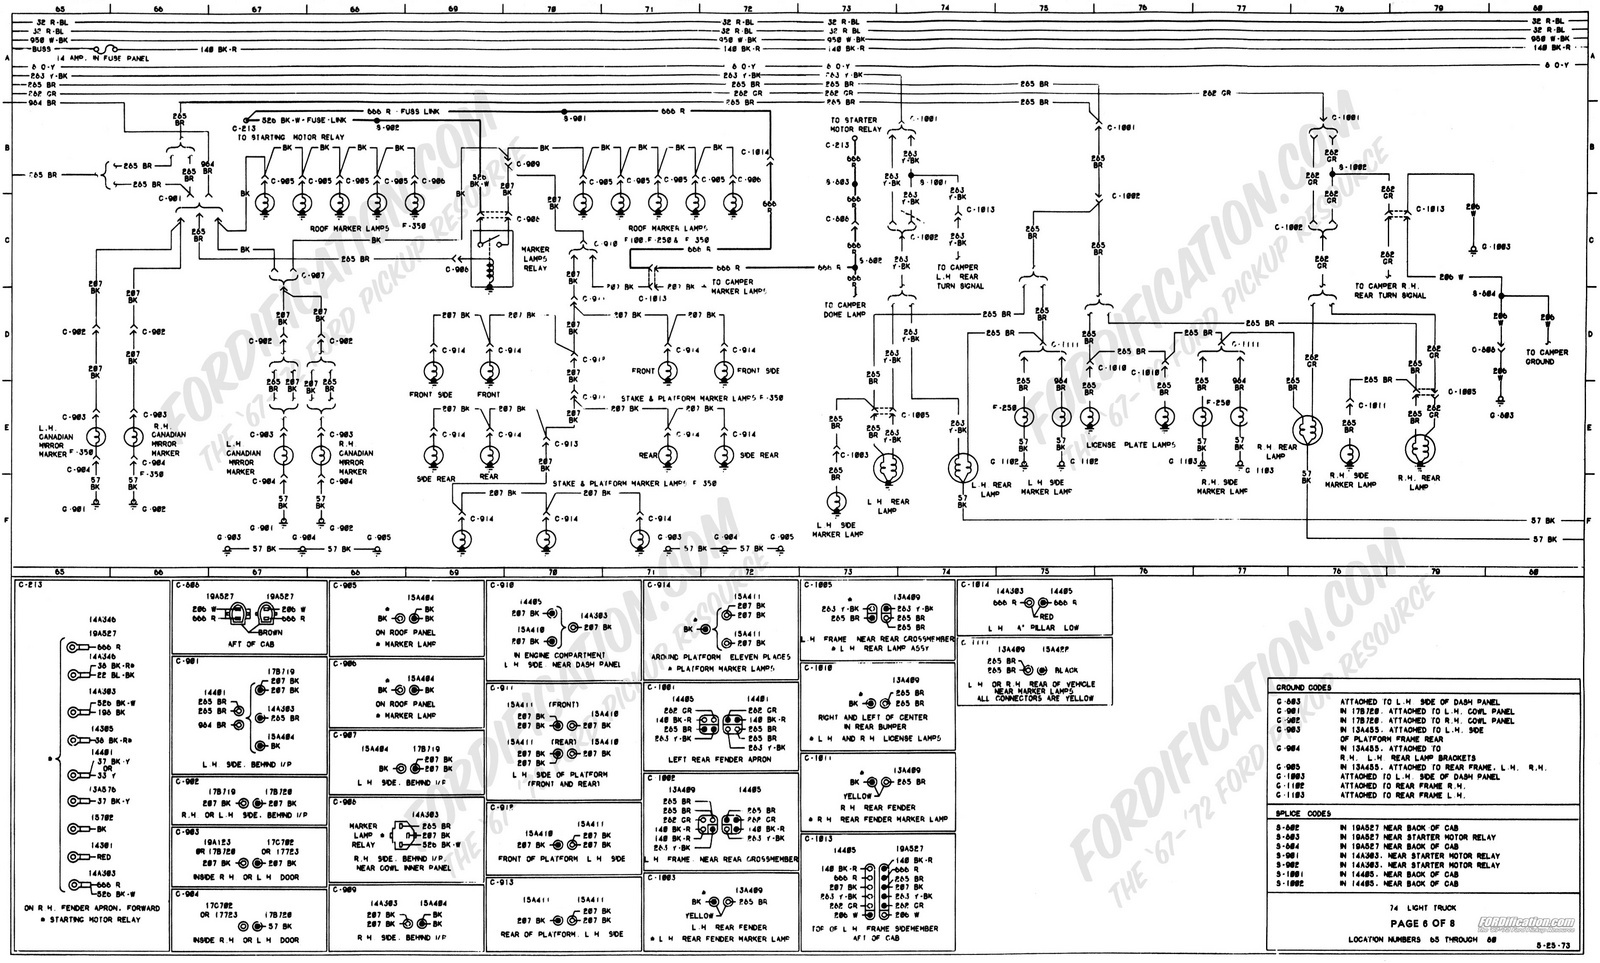 2014 Ford F550 Trailer Wiring Diagram | Ford F550 Trailer Wiring Plug Diagram |  | Wiring Diagram